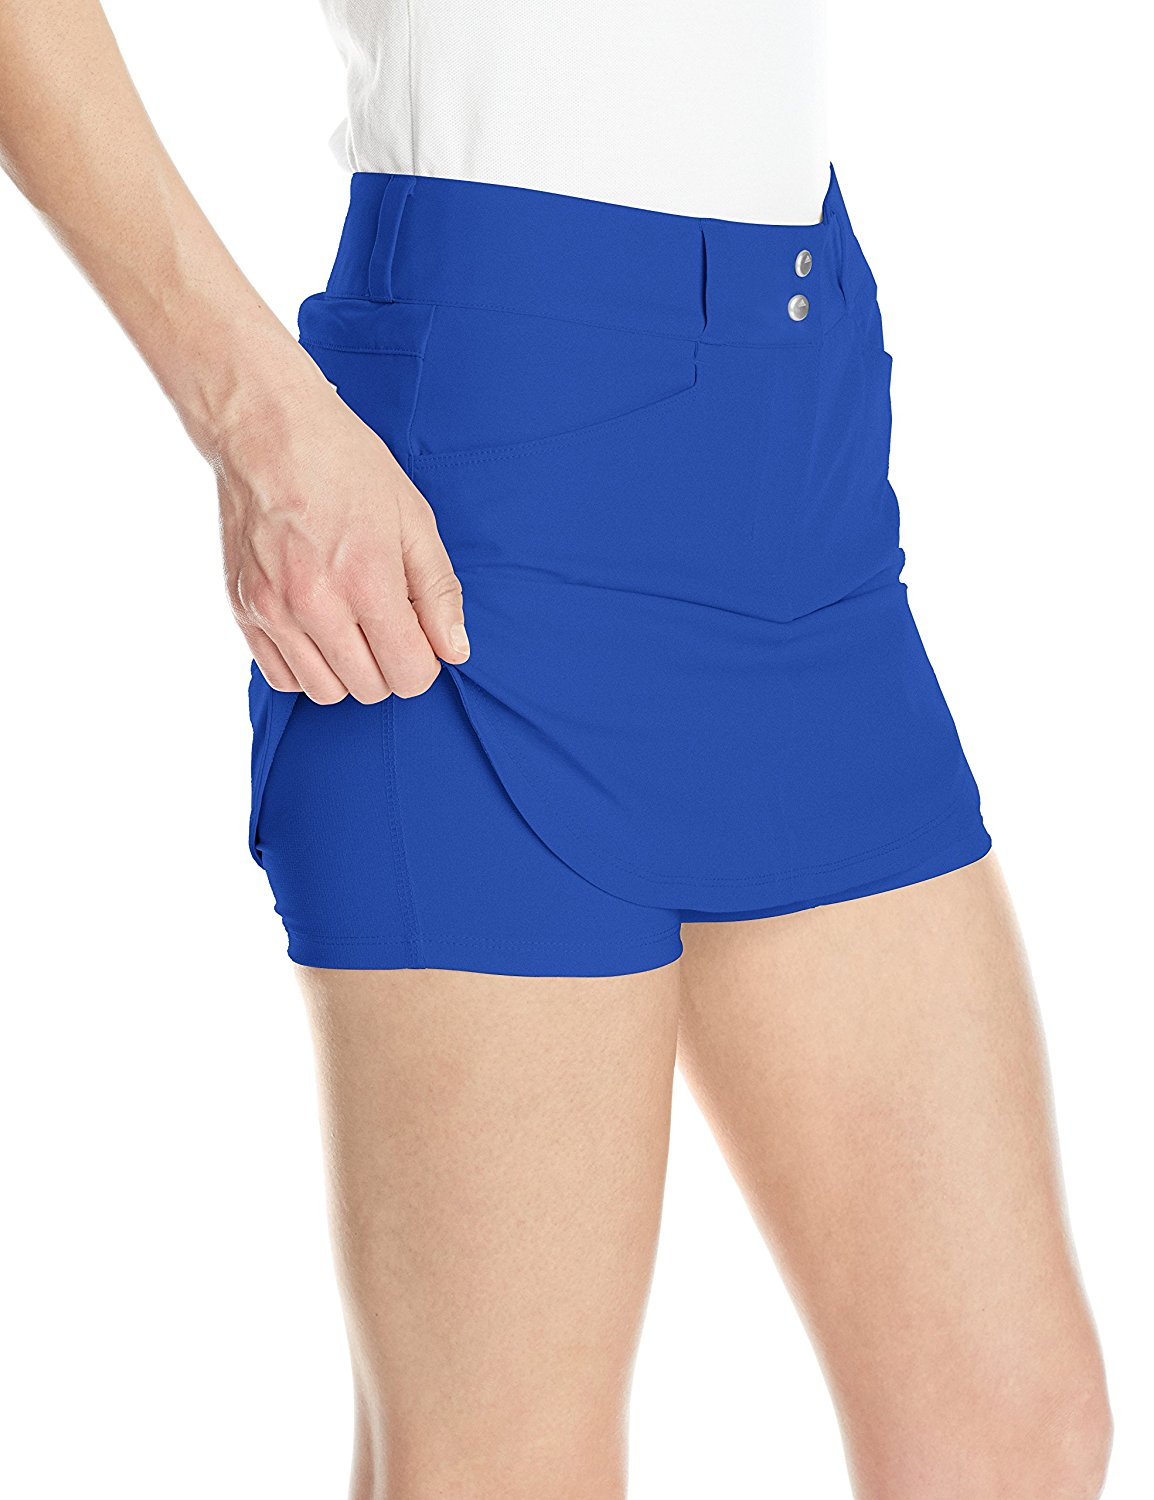 Adidas-Golf-Women-039-s-Essentials-3-Stripes-Skort-Pick-Size-amp-Color thumbnail 9